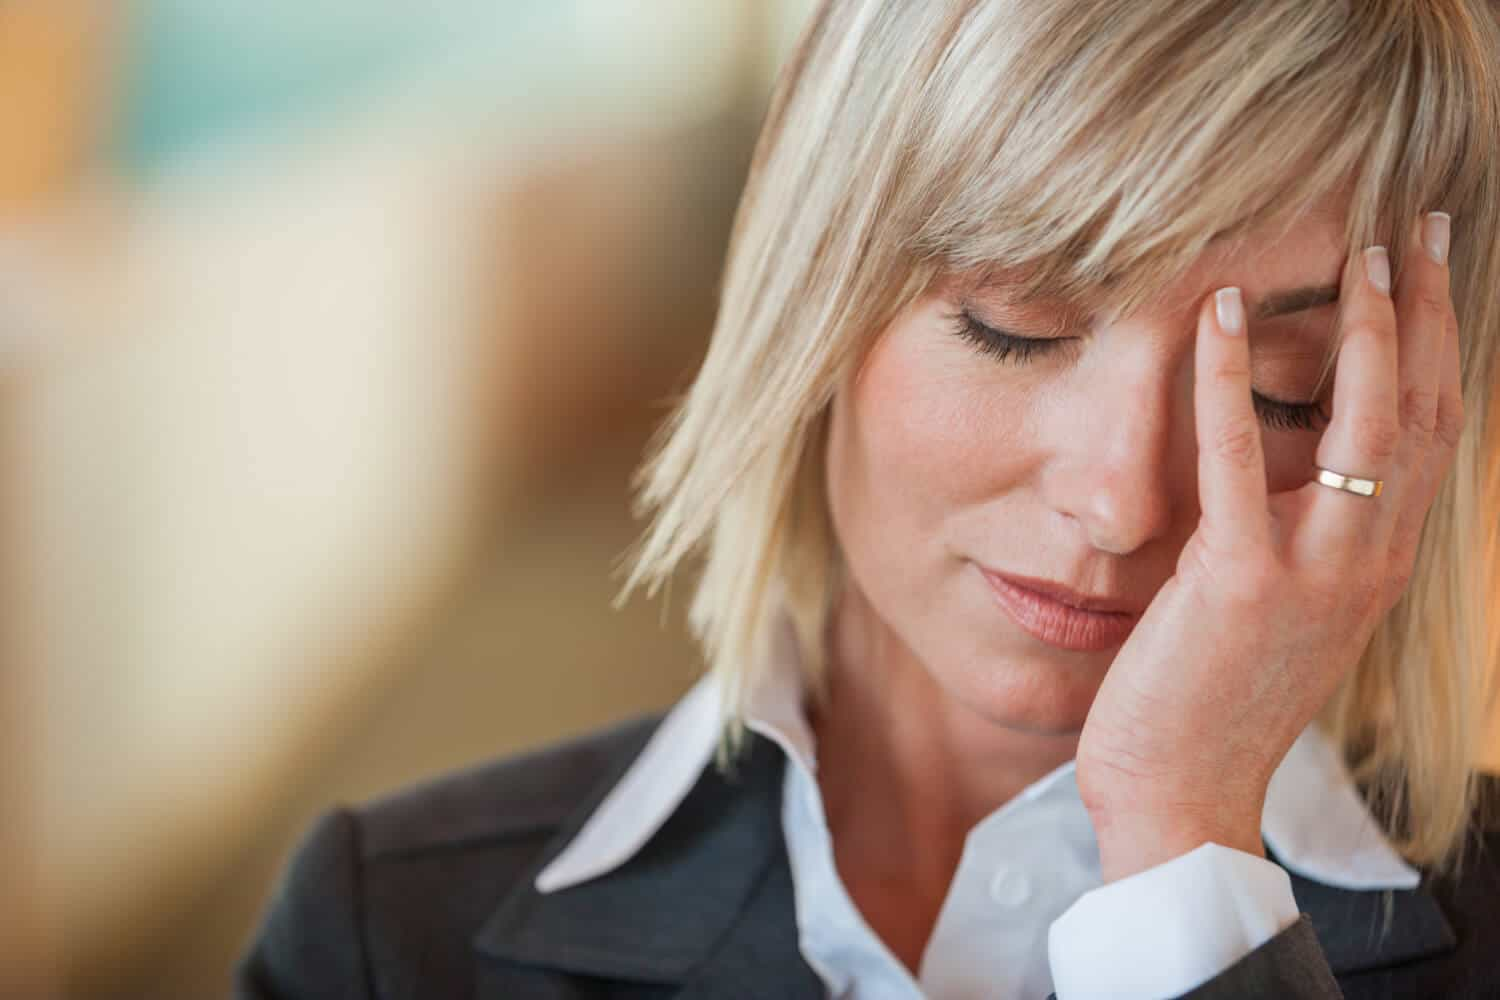 A married business woman places her hand on her face in frustration, uncertain about her debt, budget and finances